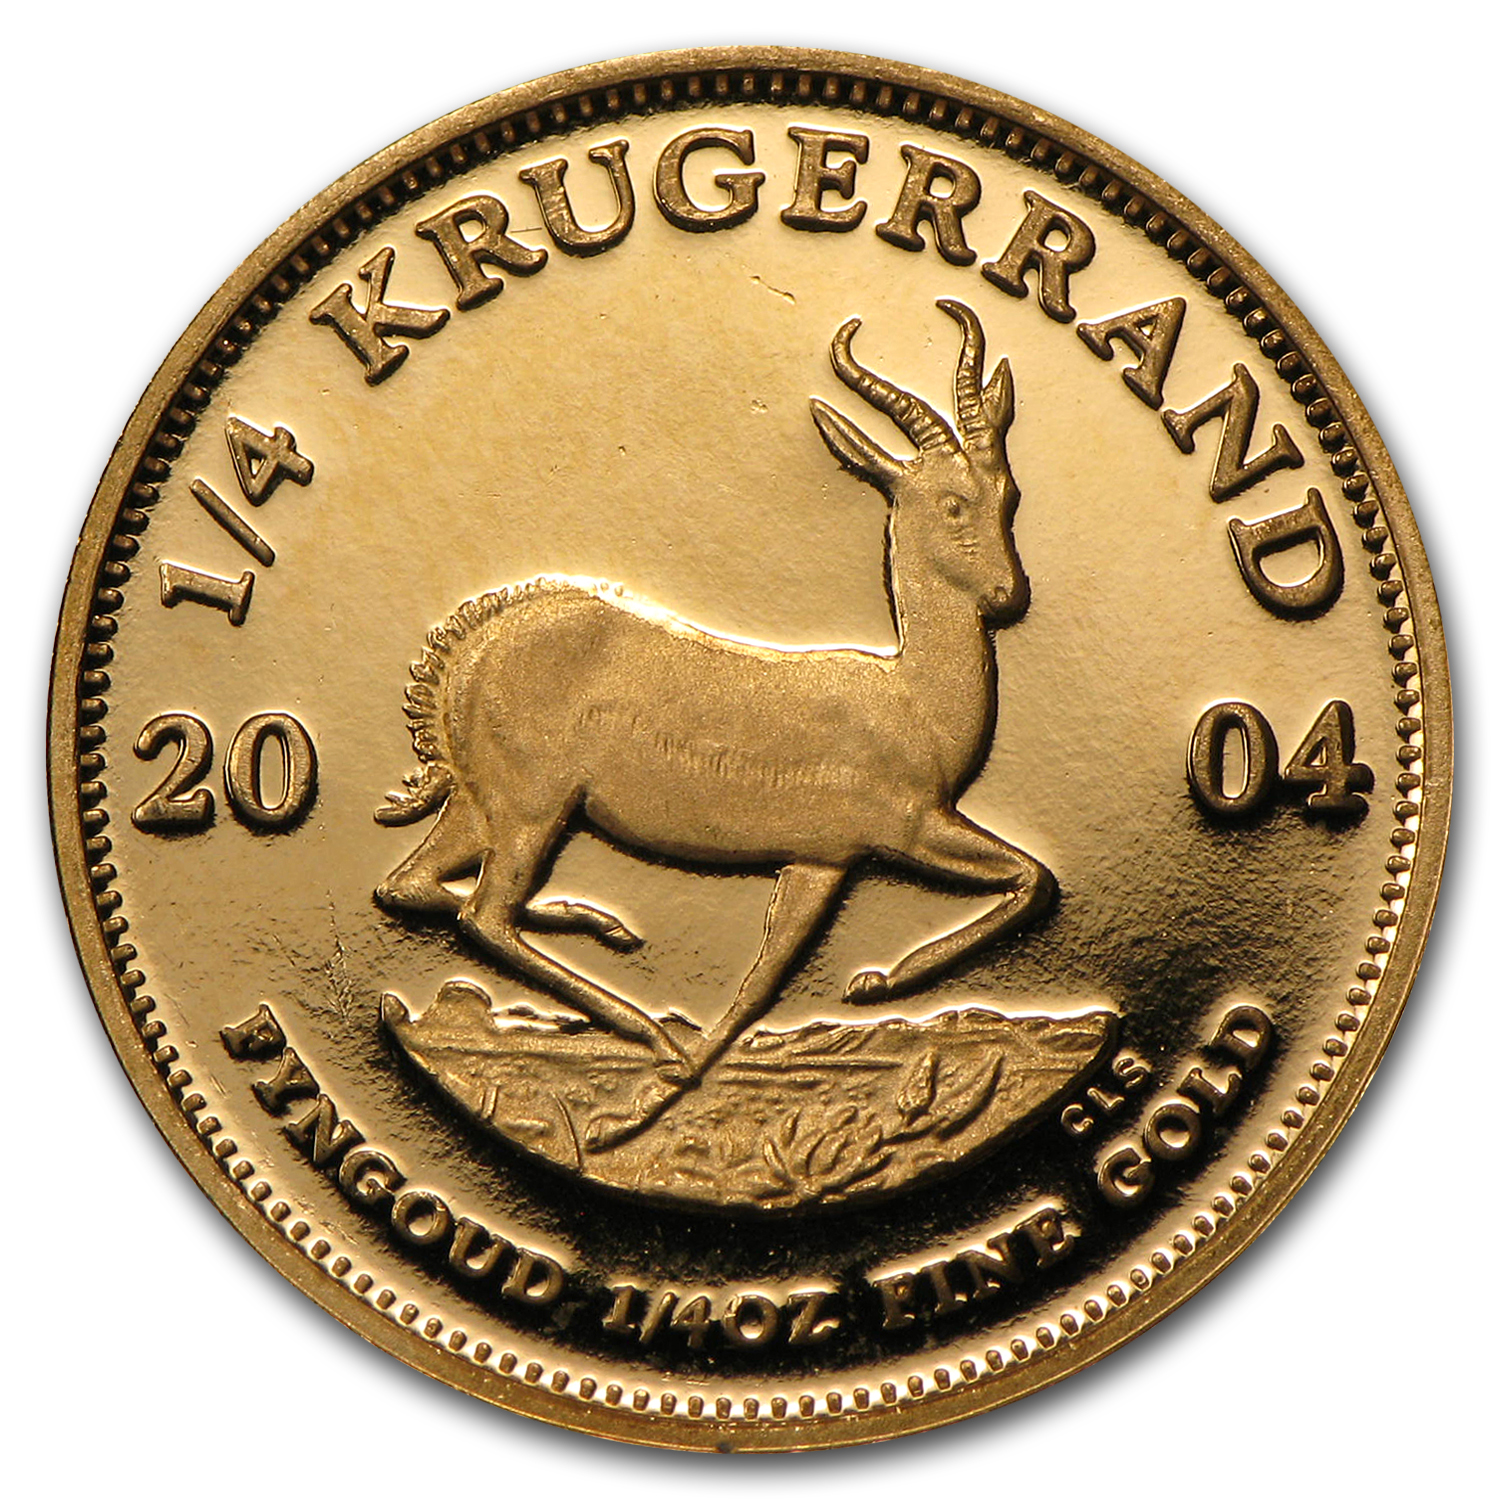 2004 South Africa 1/4 oz Proof Gold Krugerrand